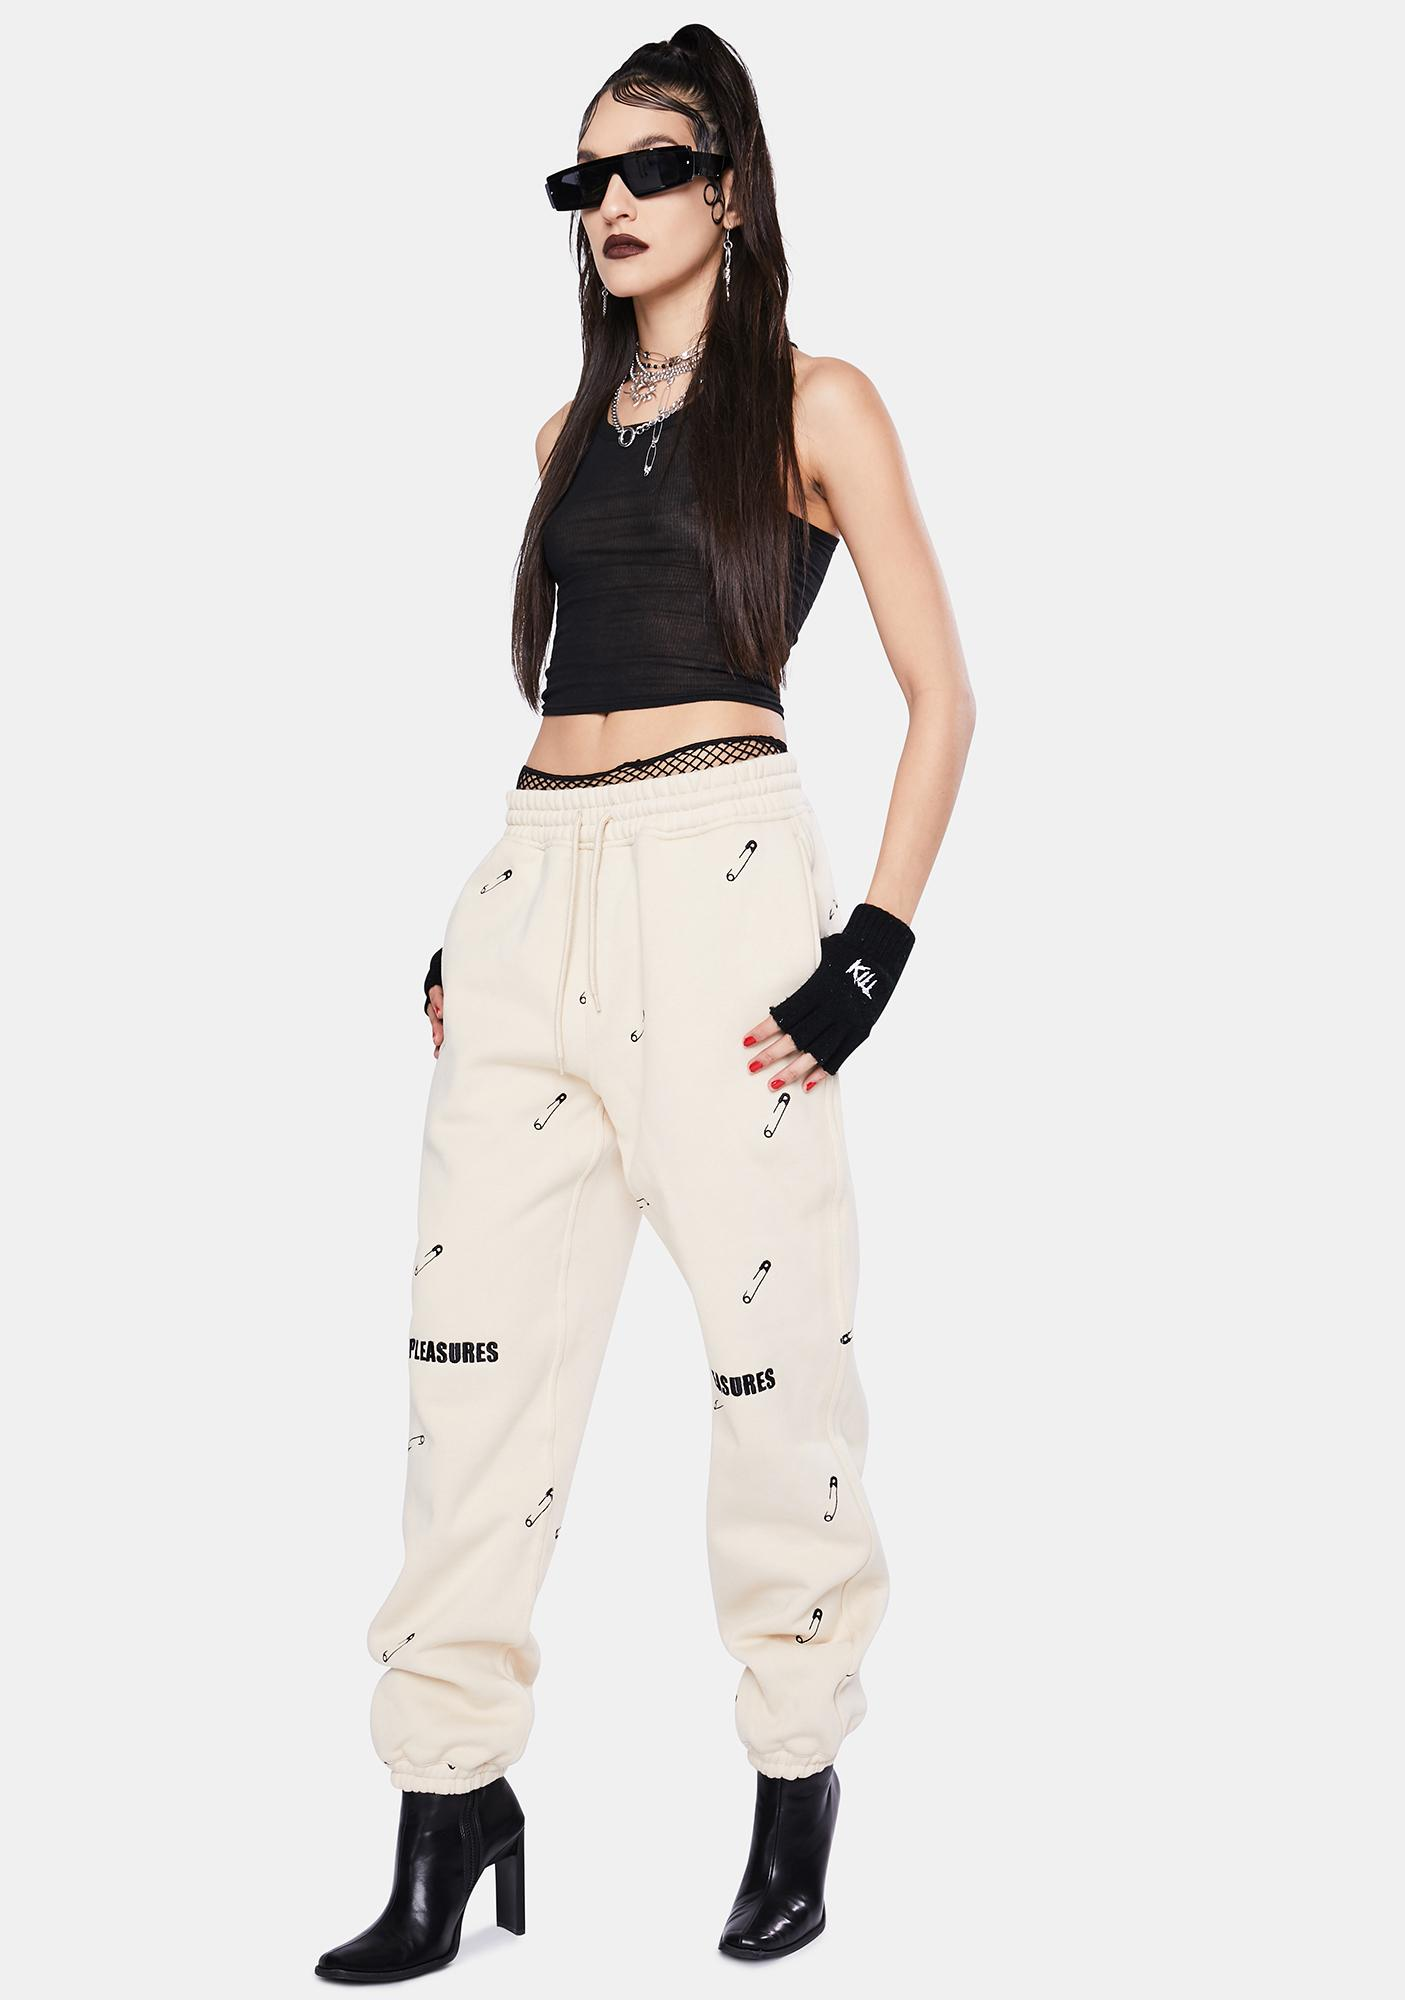 Pleasures Tan Safety Pin Embroidered Sweatpants